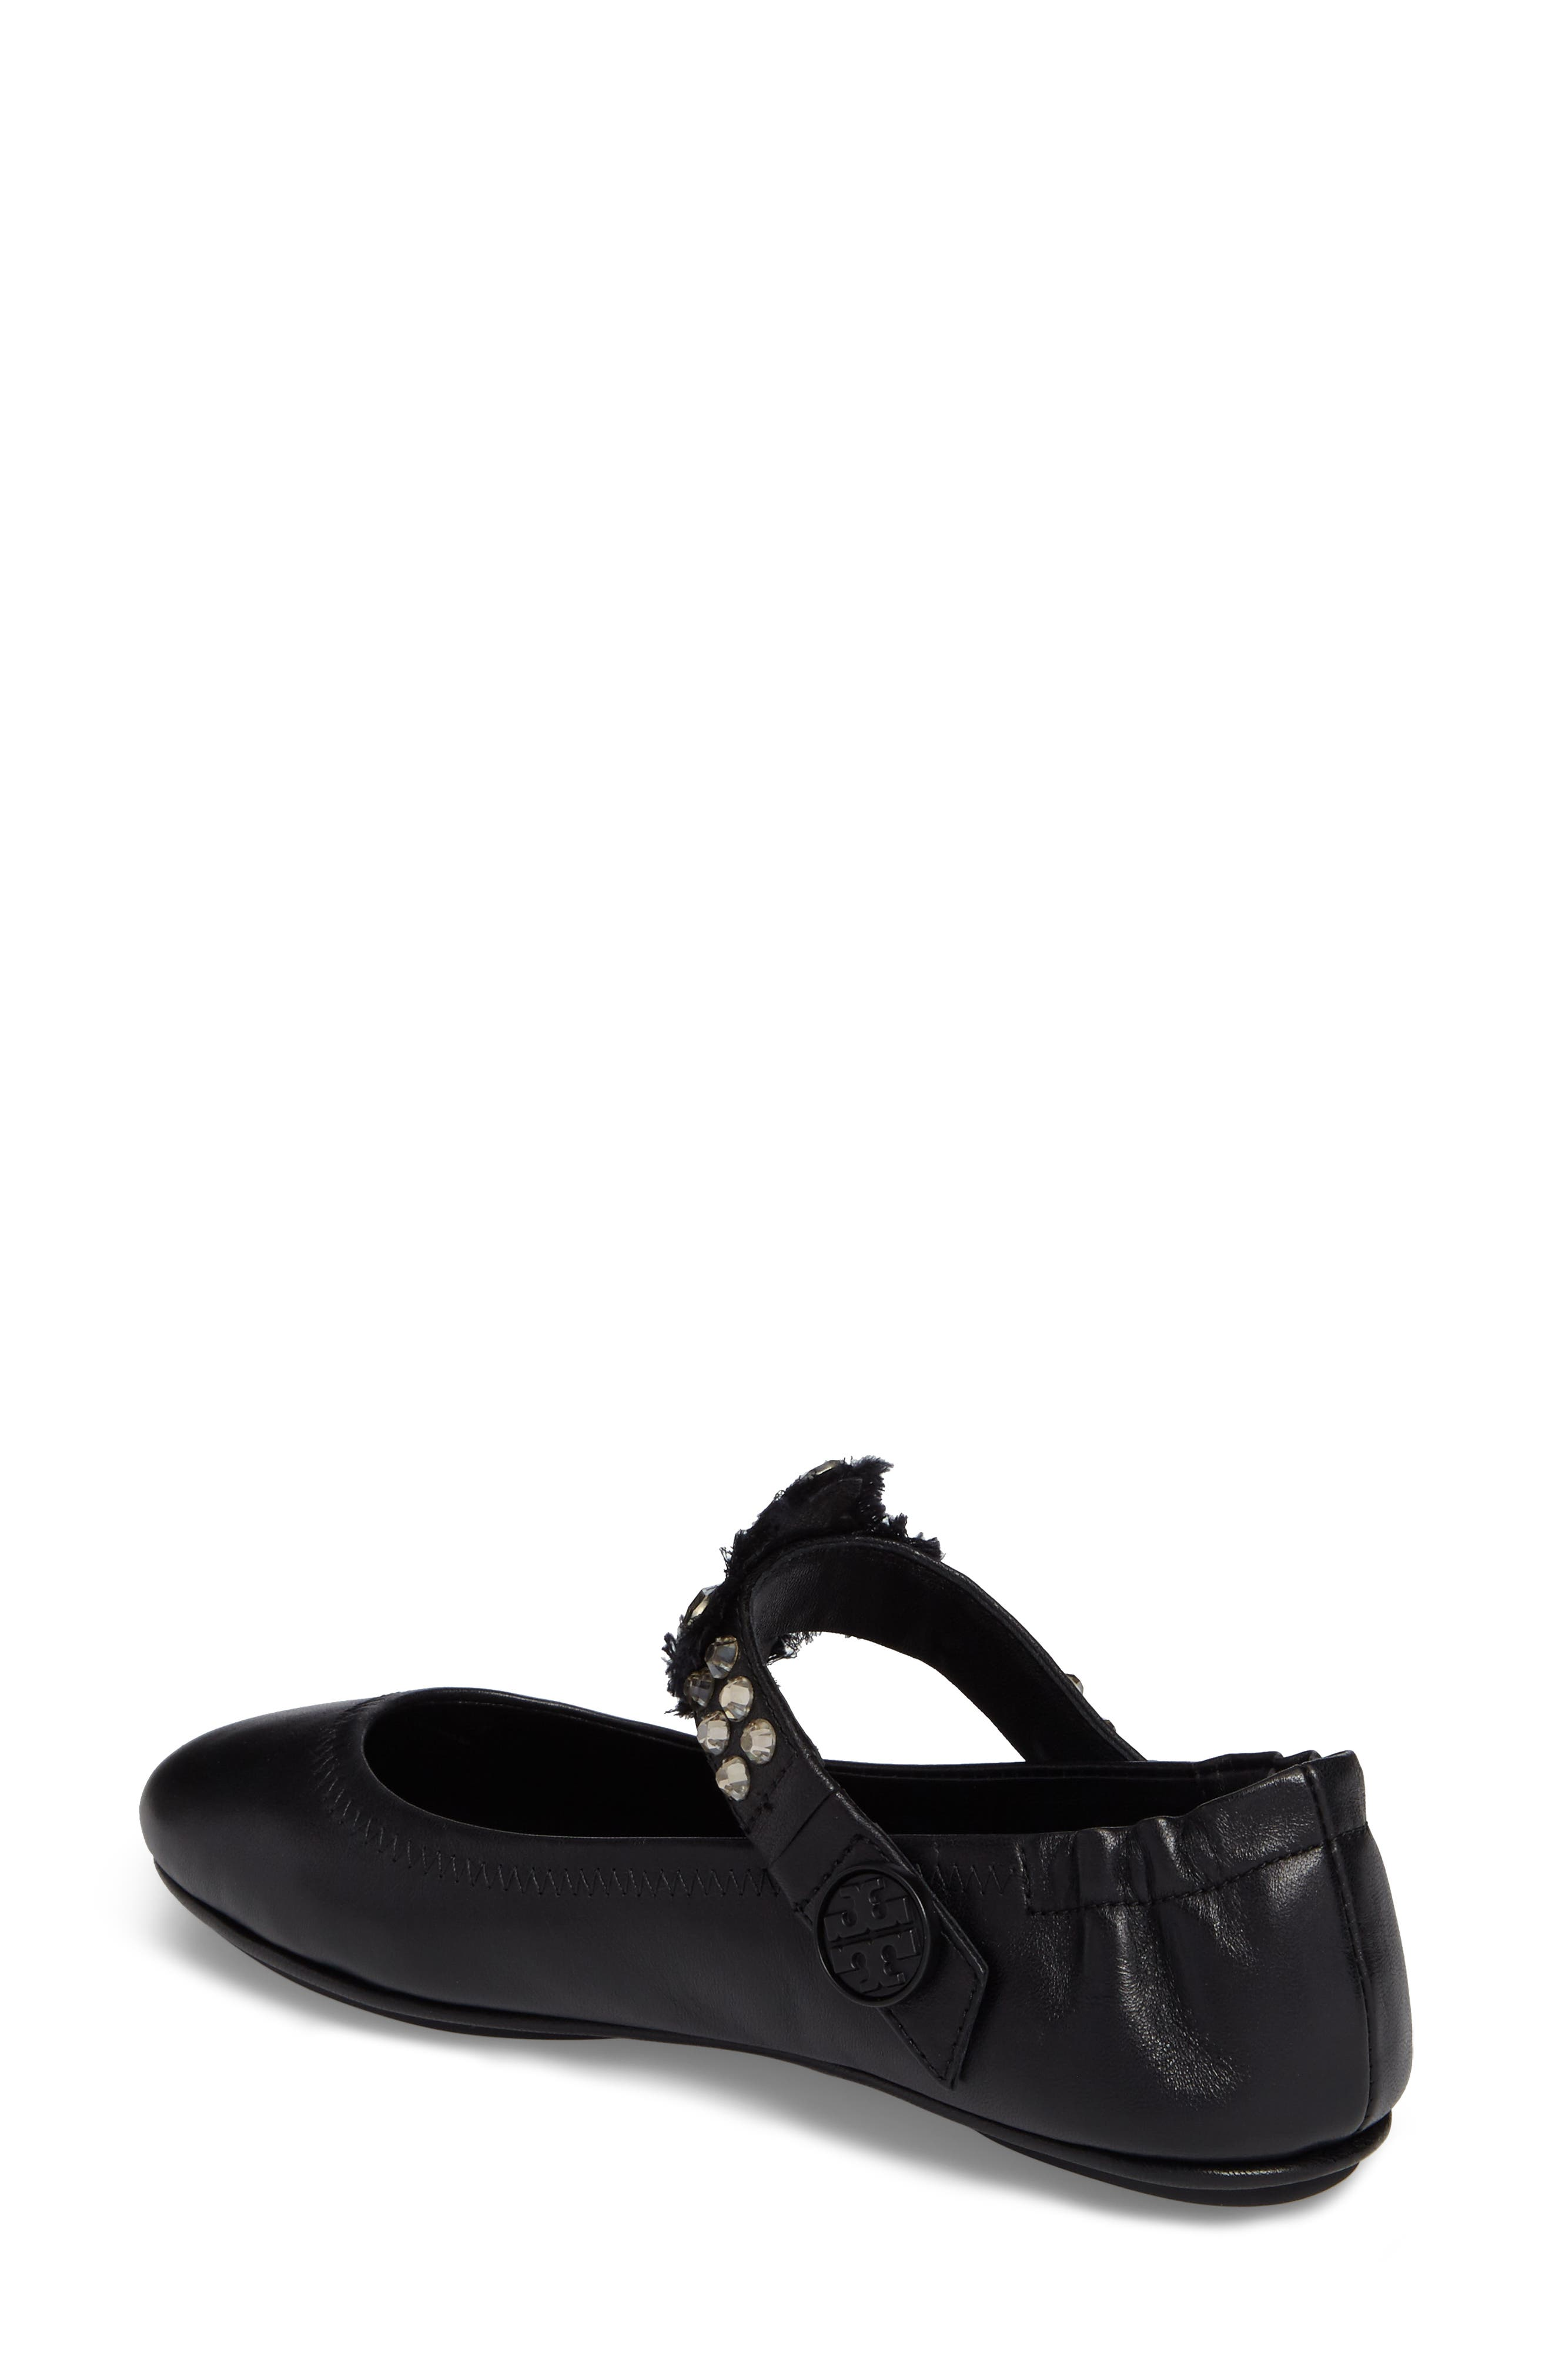 Minnie Embellished Convertible Strap Ballet Flat,                             Alternate thumbnail 2, color,                             Black/ Clear